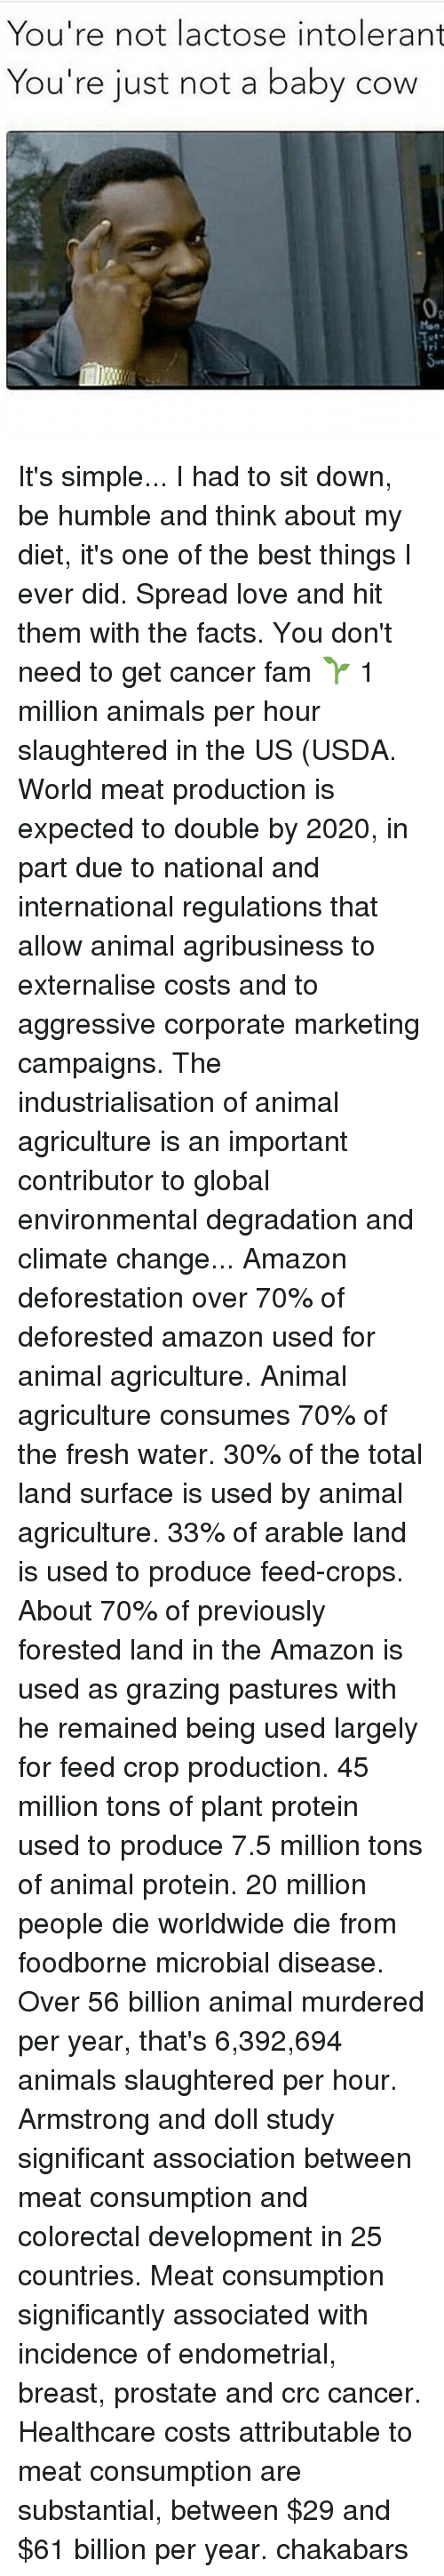 Amazon, Animals, and Facts: You're not lactose intolerant  You're just not a baby cow  0a It's simple... I had to sit down, be humble and think about my diet, it's one of the best things I ever did. Spread love and hit them with the facts. You don't need to get cancer fam 🌱 1 million animals per hour slaughtered in the US (USDA. World meat production is expected to double by 2020, in part due to national and international regulations that allow animal agribusiness to externalise costs and to aggressive corporate marketing campaigns. The industrialisation of animal agriculture is an important contributor to global environmental degradation and climate change... Amazon deforestation over 70% of deforested amazon used for animal agriculture. Animal agriculture consumes 70% of the fresh water. 30% of the total land surface is used by animal agriculture. 33% of arable land is used to produce feed-crops. About 70% of previously forested land in the Amazon is used as grazing pastures with he remained being used largely for feed crop production. 45 million tons of plant protein used to produce 7.5 million tons of animal protein. 20 million people die worldwide die from foodborne microbial disease. Over 56 billion animal murdered per year, that's 6,392,694 animals slaughtered per hour. Armstrong and doll study significant association between meat consumption and colorectal development in 25 countries. Meat consumption significantly associated with incidence of endometrial, breast, prostate and crc cancer. Healthcare costs attributable to meat consumption are substantial, between $29 and $61 billion per year. chakabars